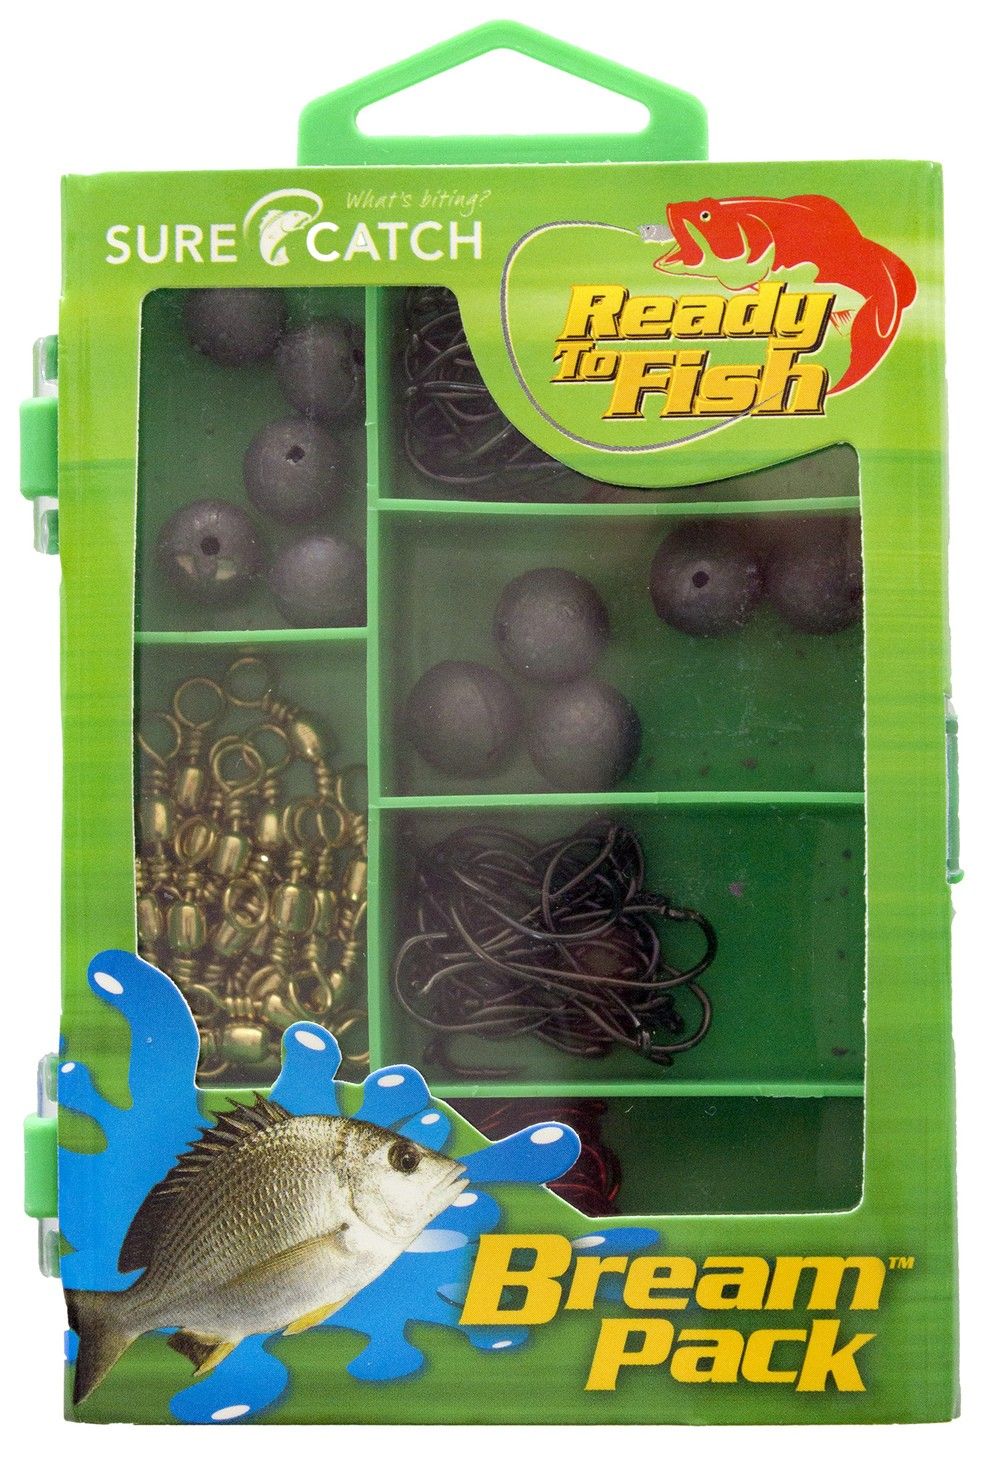 Sure Catch Tackle Essentials Bream Pack  (1 x Kit)